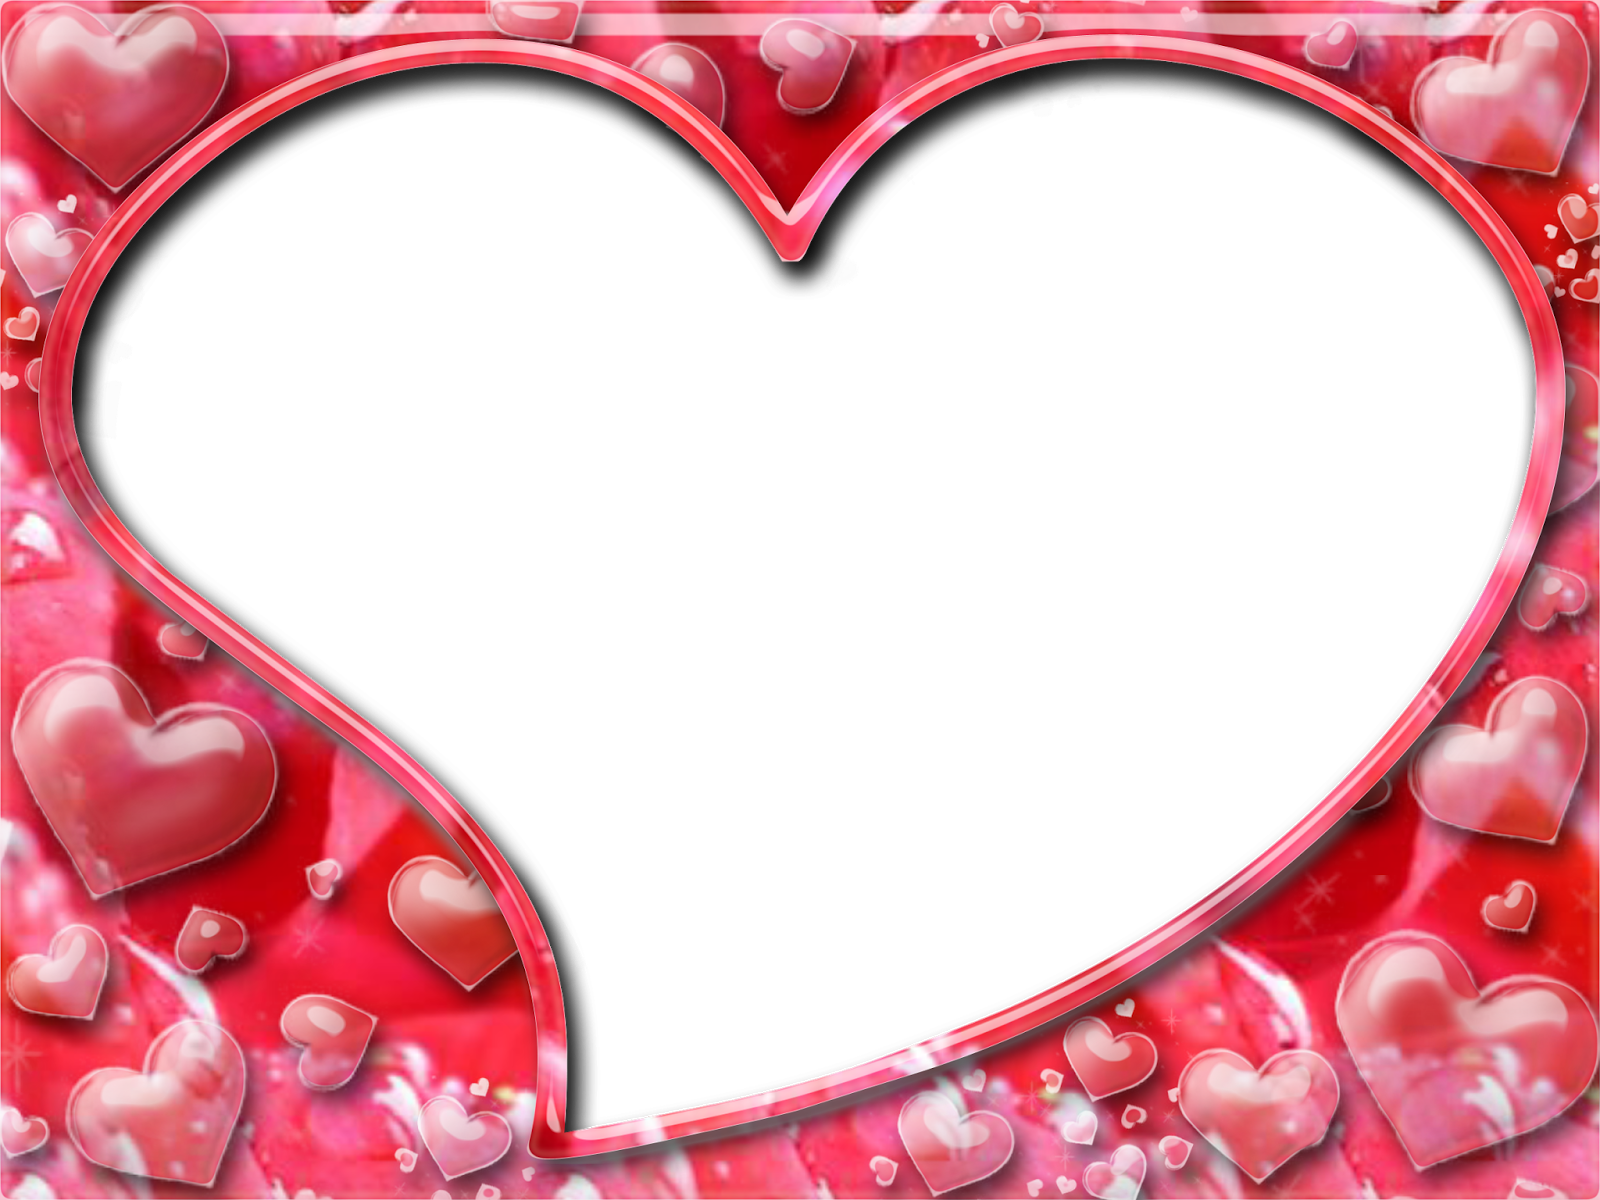 Romantic Love Frames 42 High Resolution Wallpaper ...